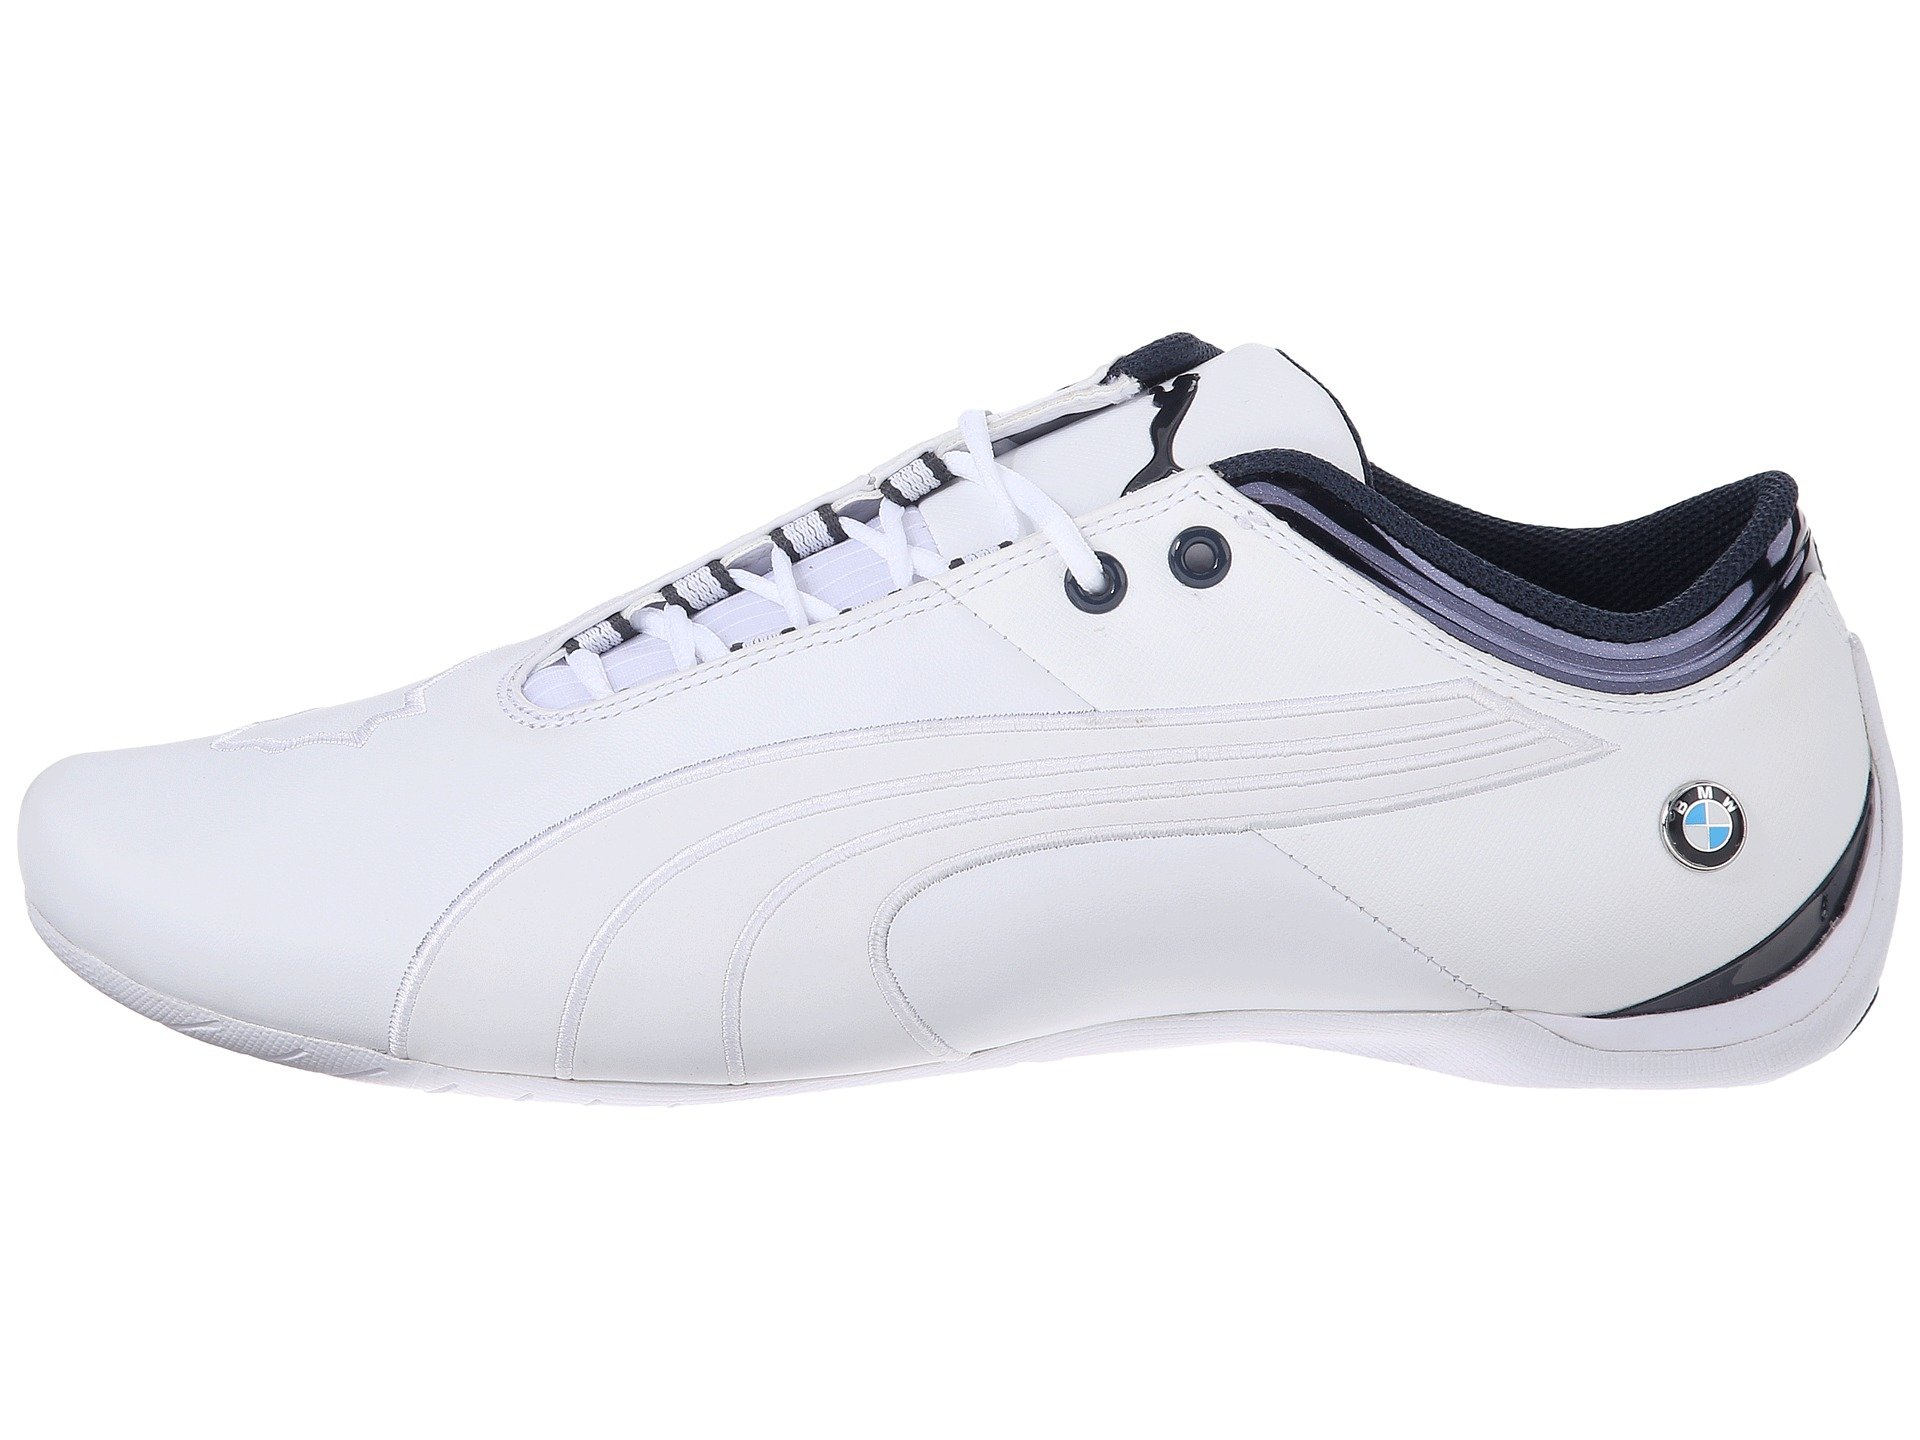 puma bmw white shoes off 57% - stepxtech.in